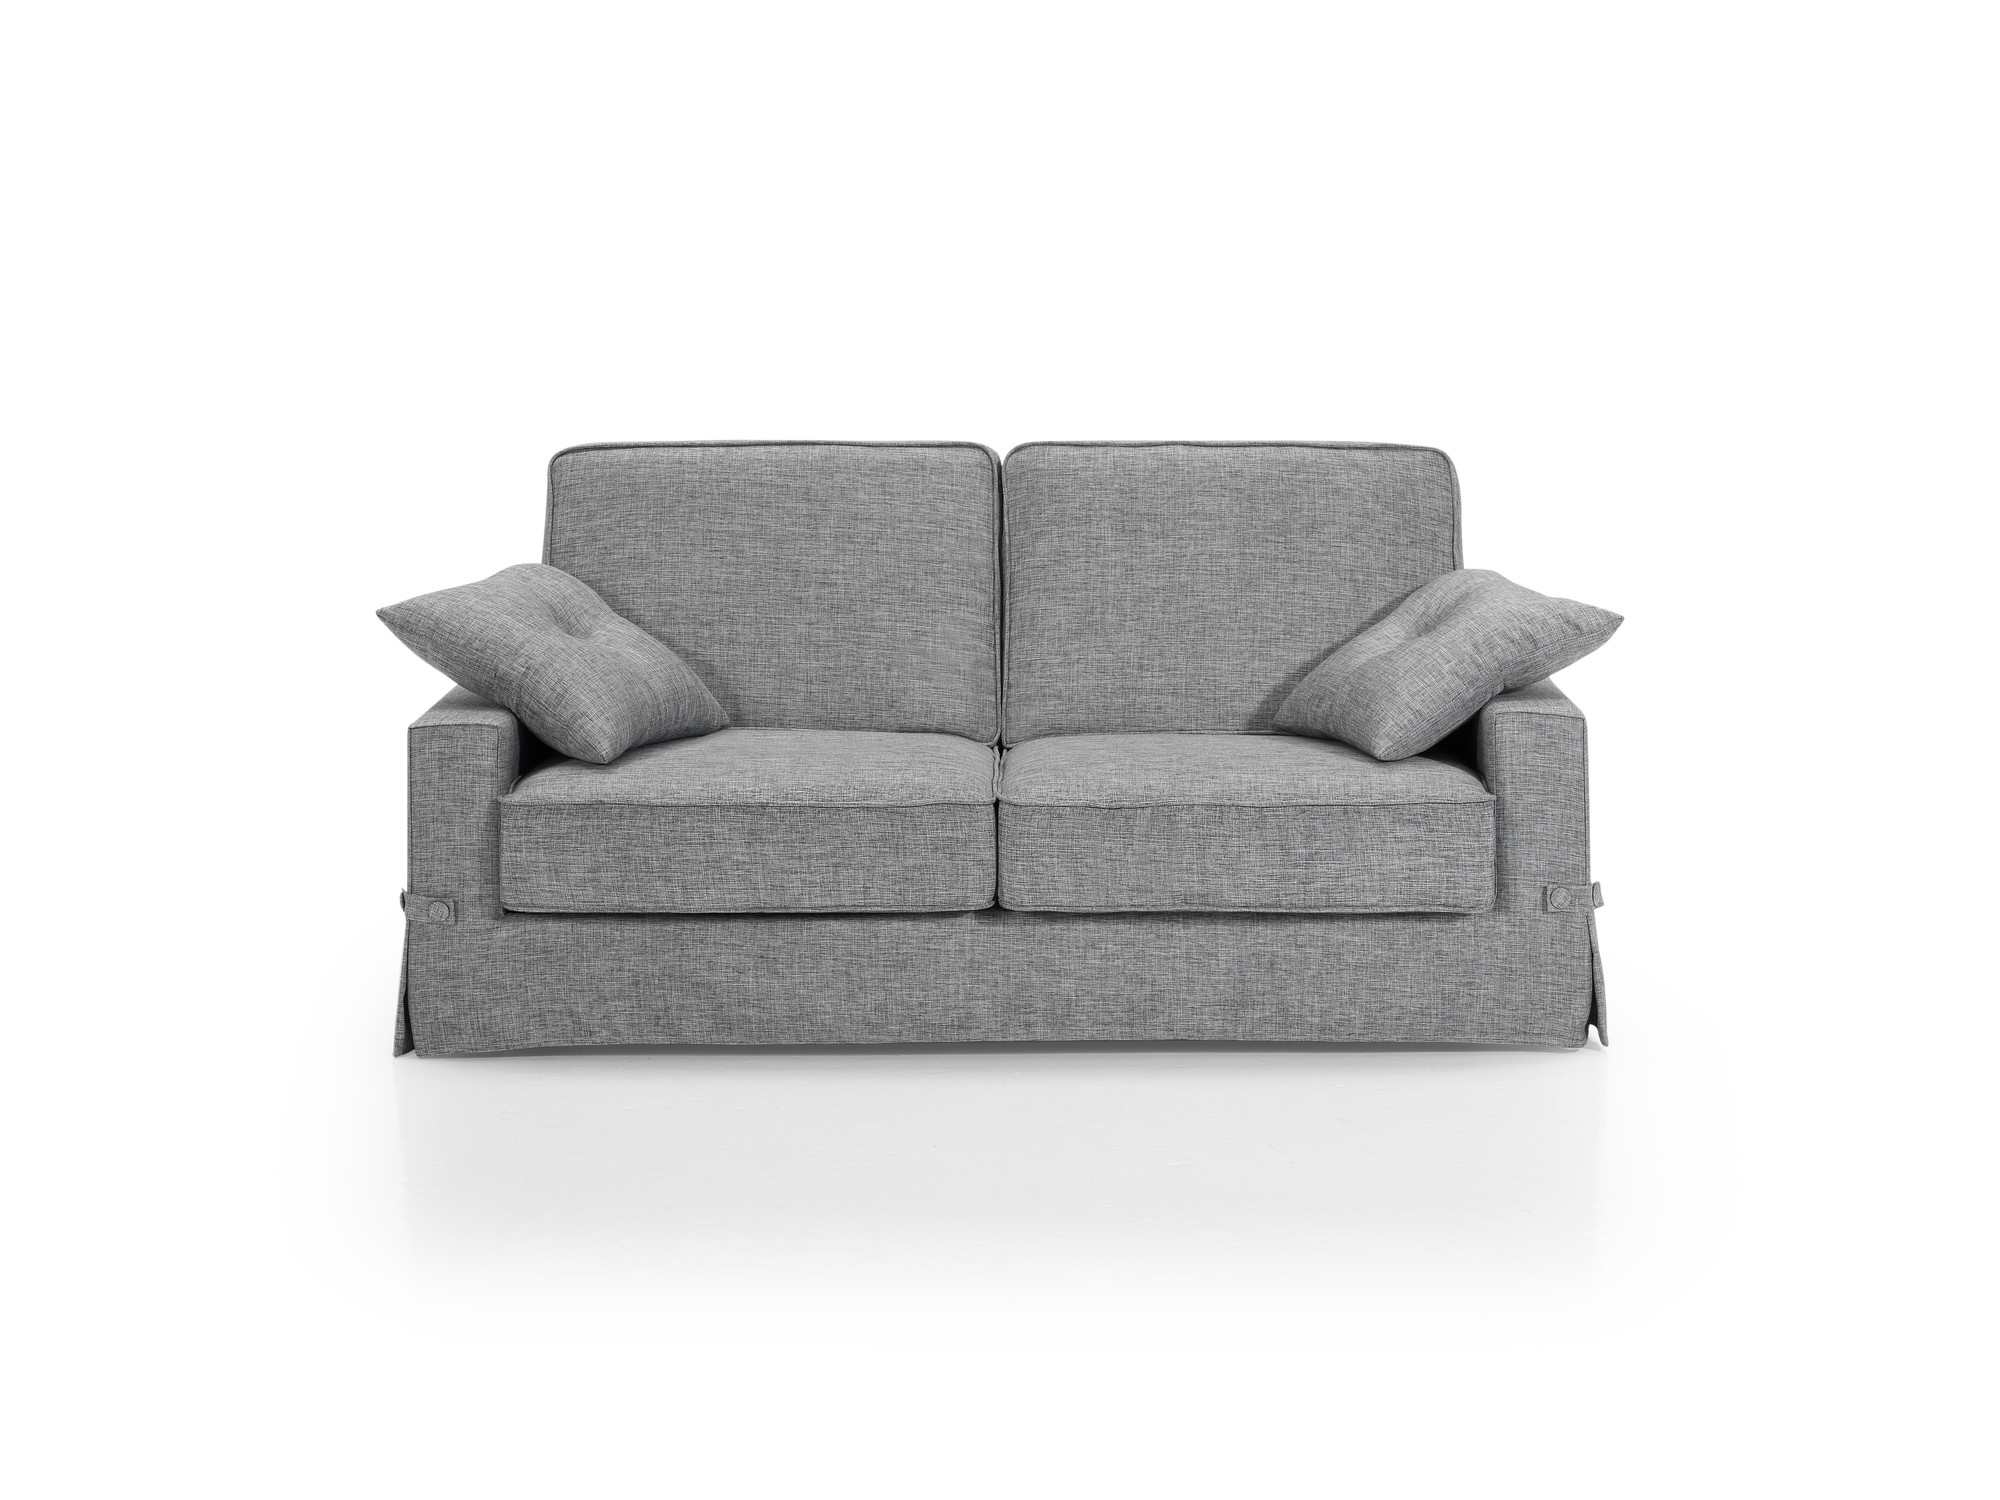 Convertible Couchage Quoti n LaTableBasse